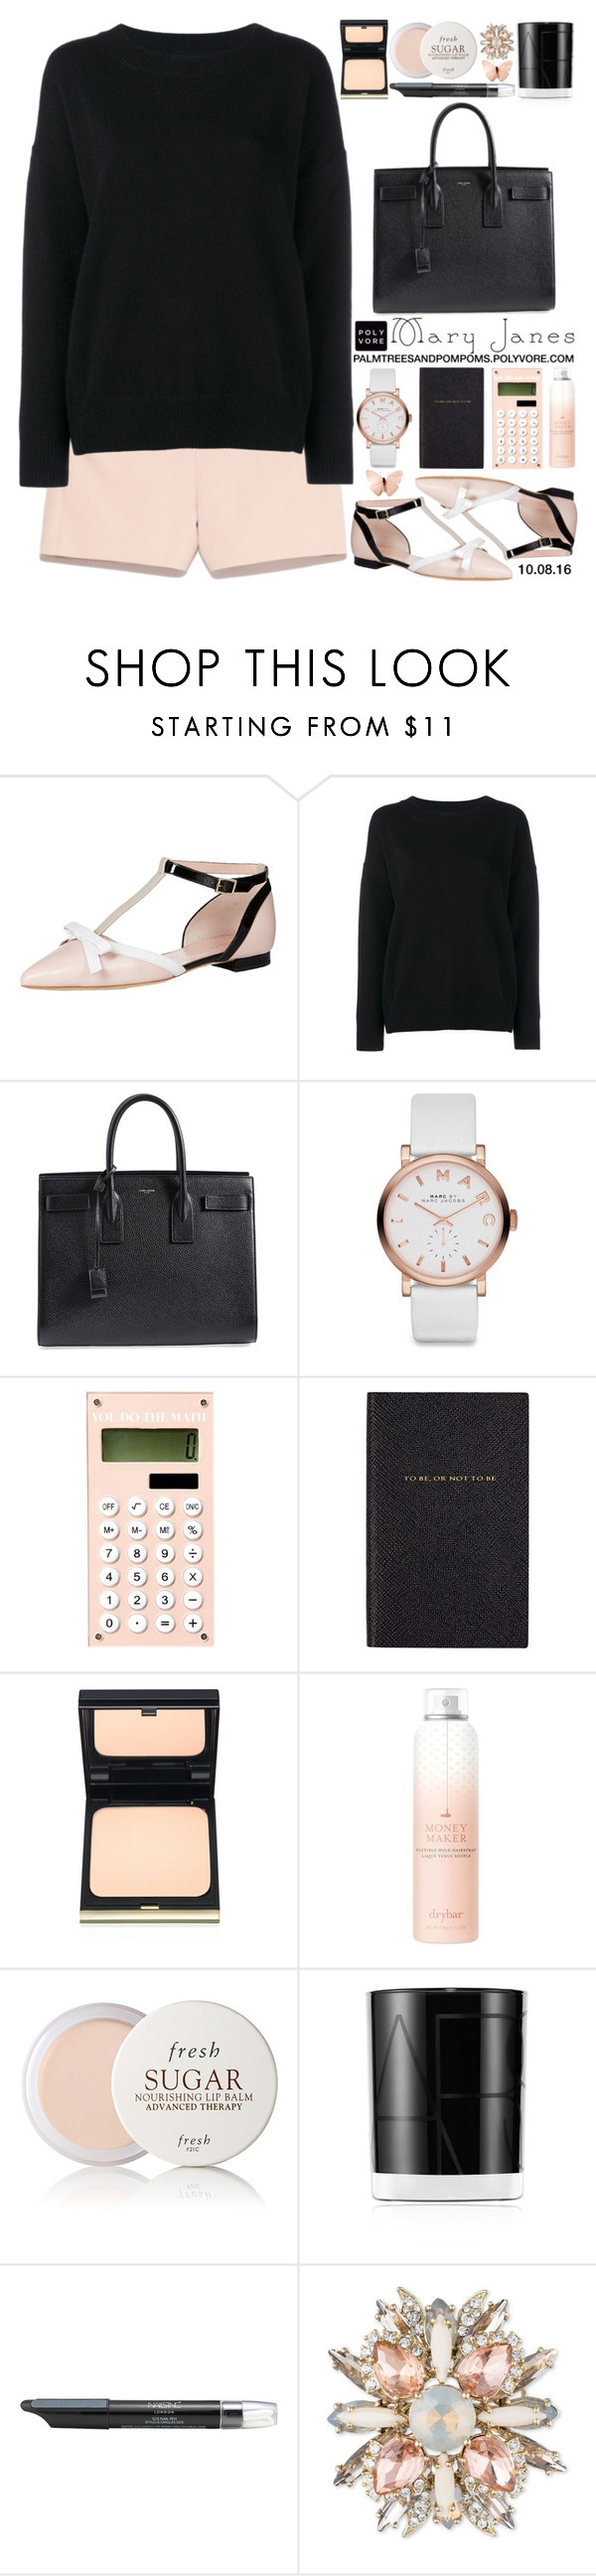 """""""Sweet Mary Janes / kate spade new york Becca Too Mary Jane Flat"""" by palmtreesandpompoms ❤ liked on Polyvore featuring Kate Spade, Frame Denim, Yves Saint Laurent, Marc by Marc Jacobs, Smythson, Kevyn Aucoin, Drybar, Fresh, NARS Cosmetics and Nails Inc."""